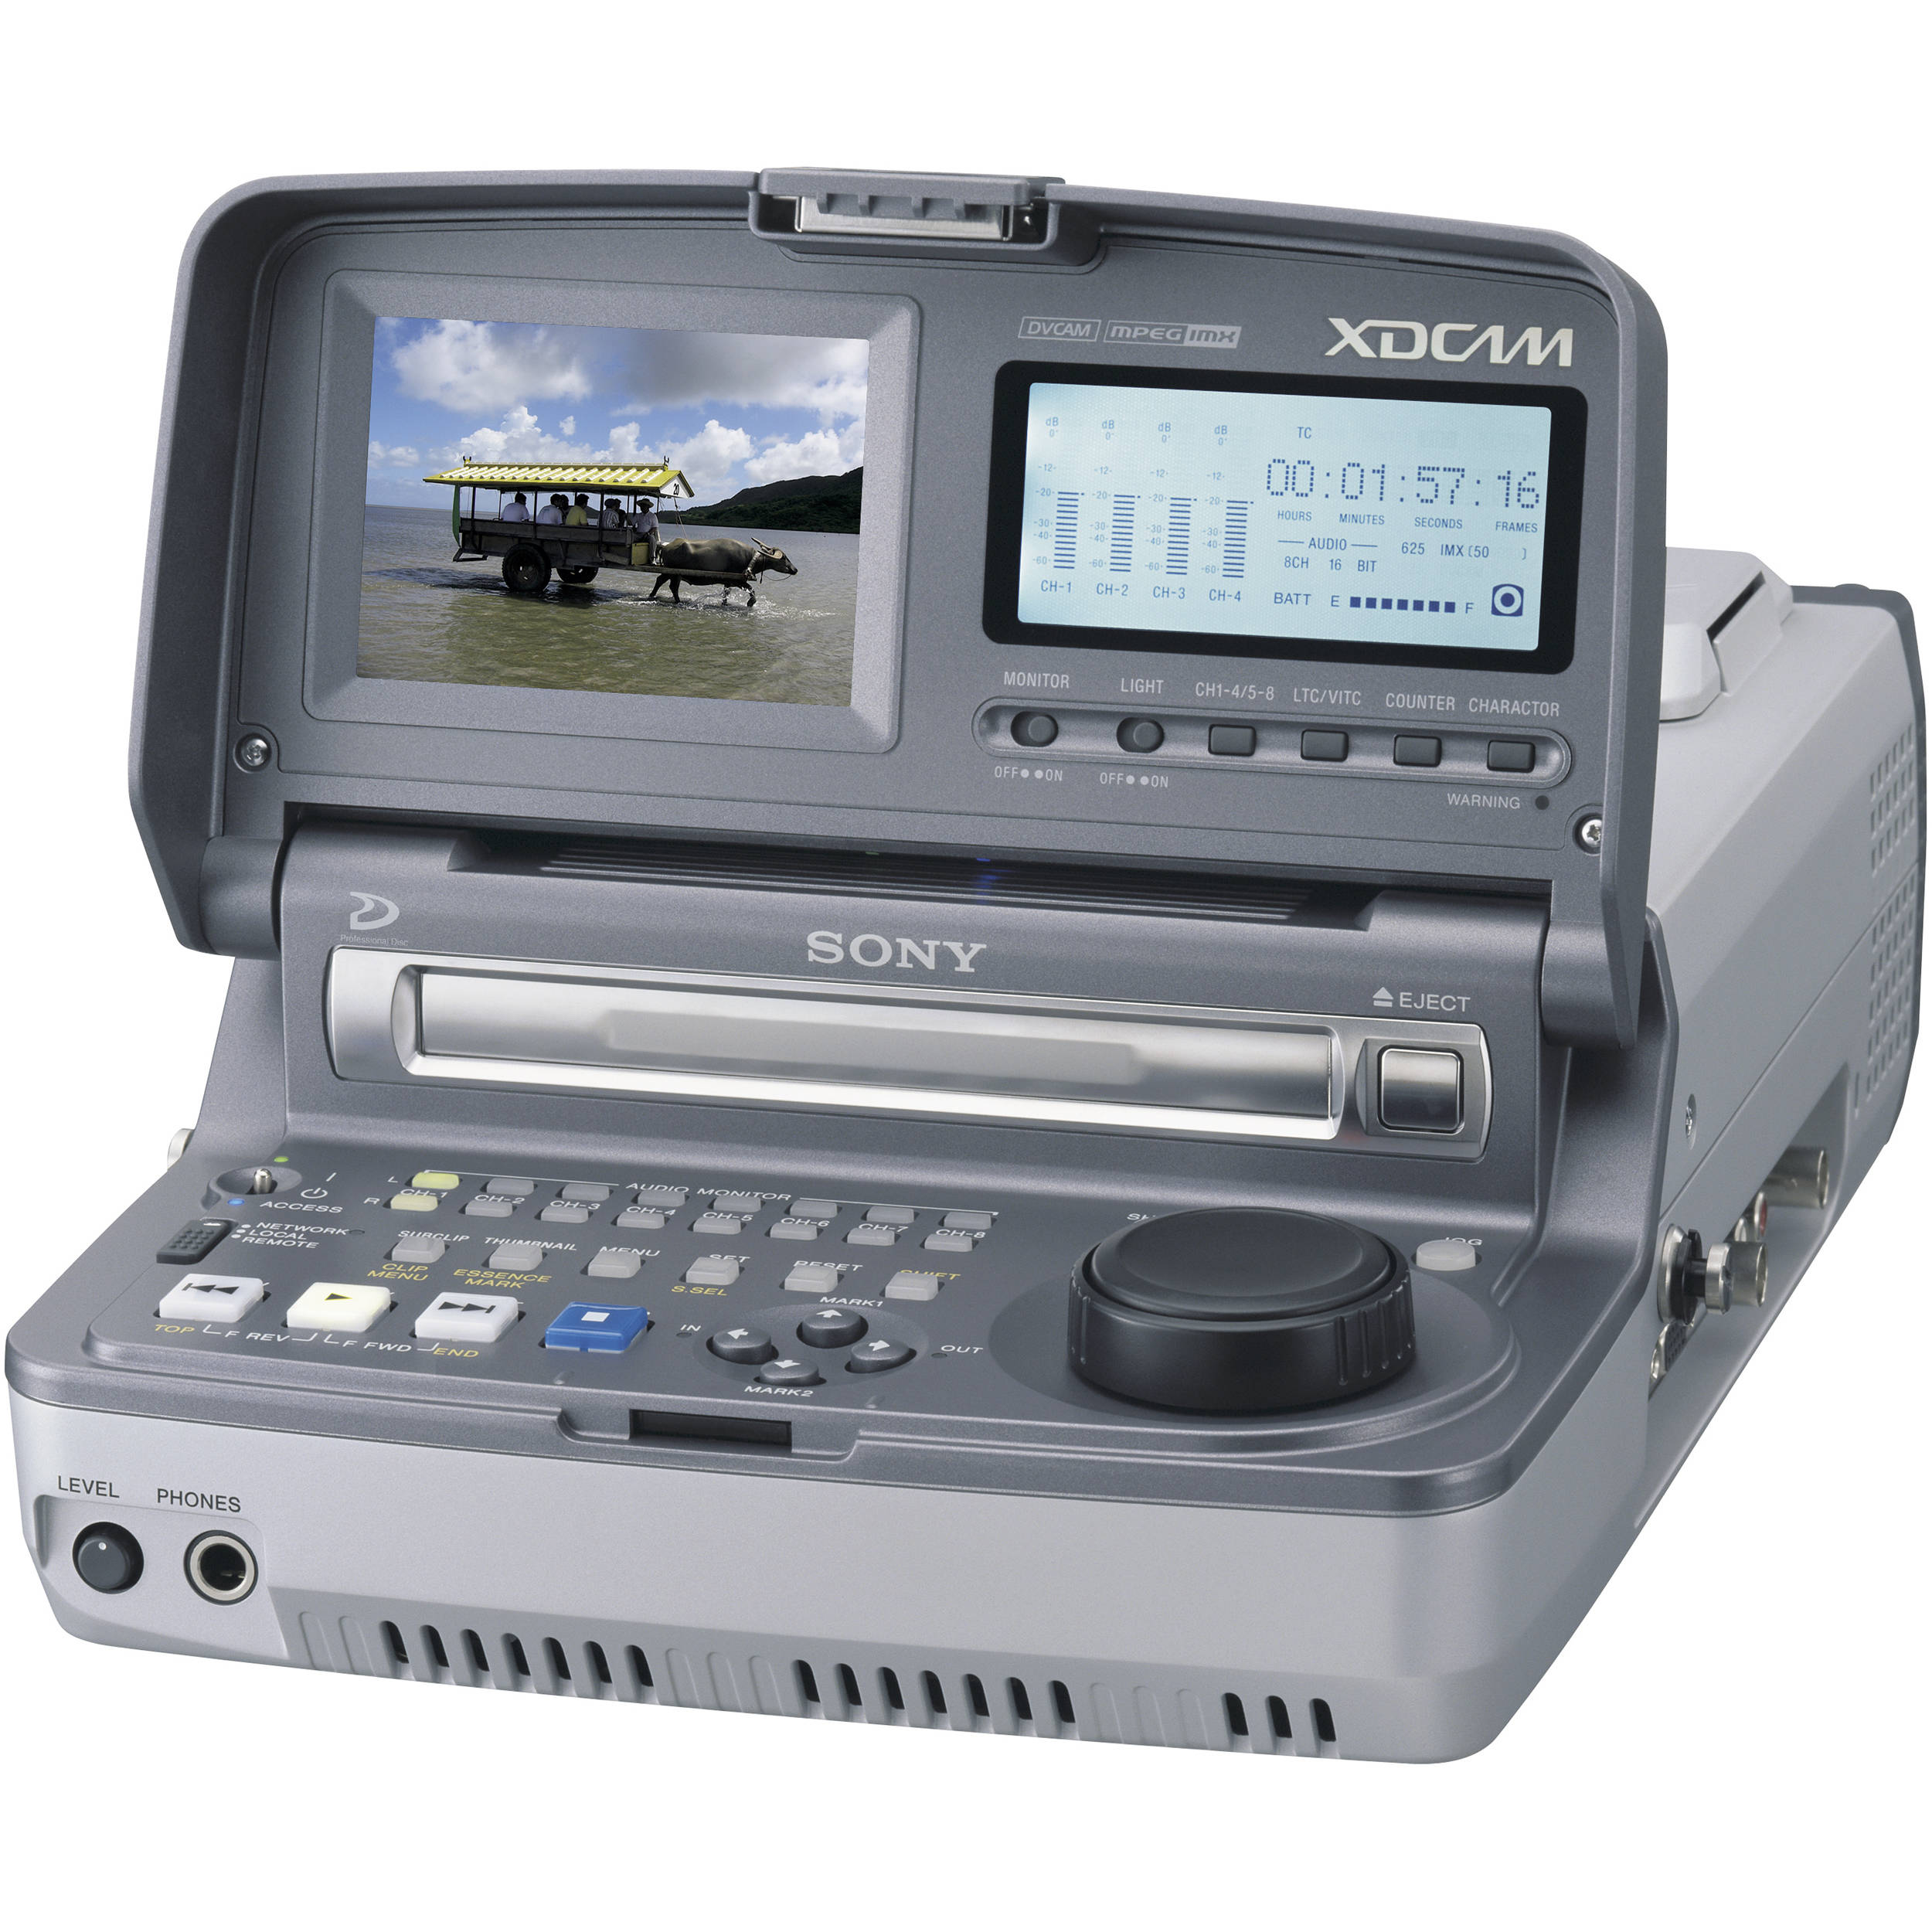 Sony PDW-V1 Mobile XDCAM Player, MPEG IMX/DVCAM, i LINK compatible